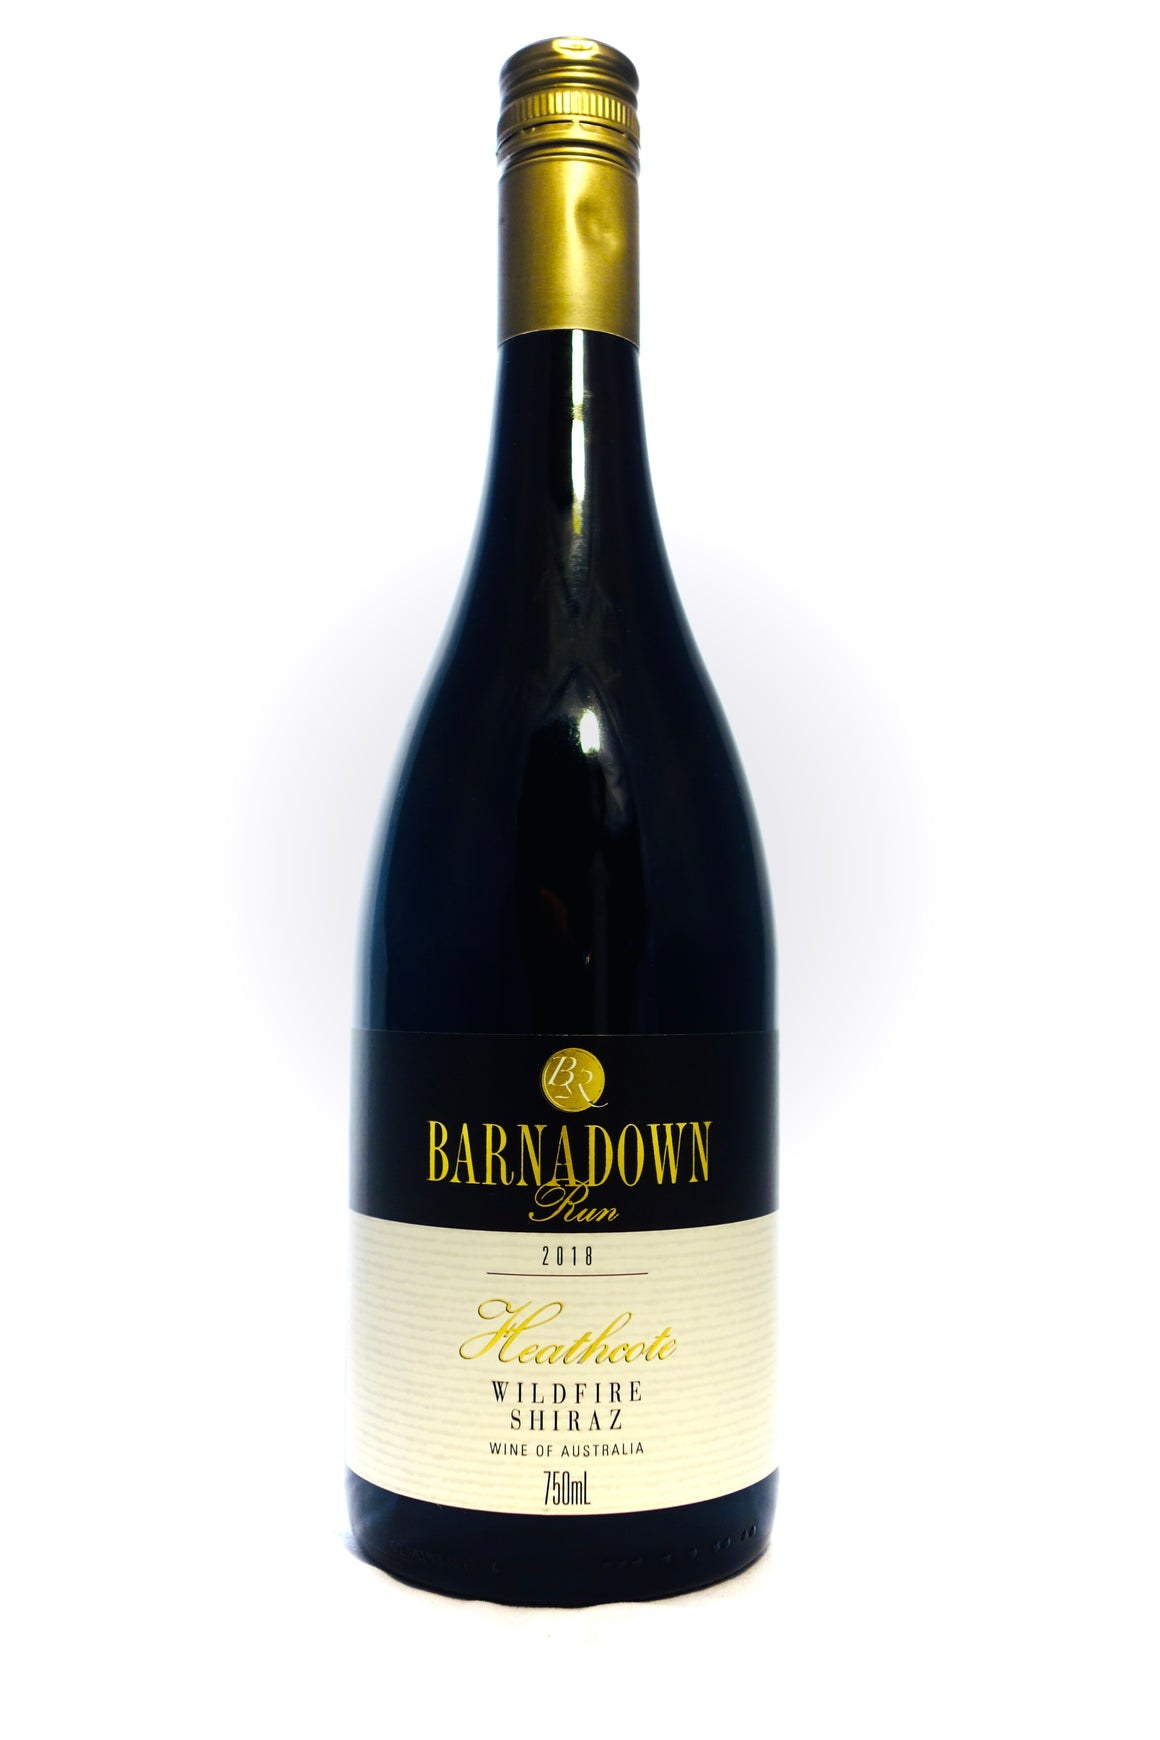 Barnadown Run 2018 Wildfire Shiraz